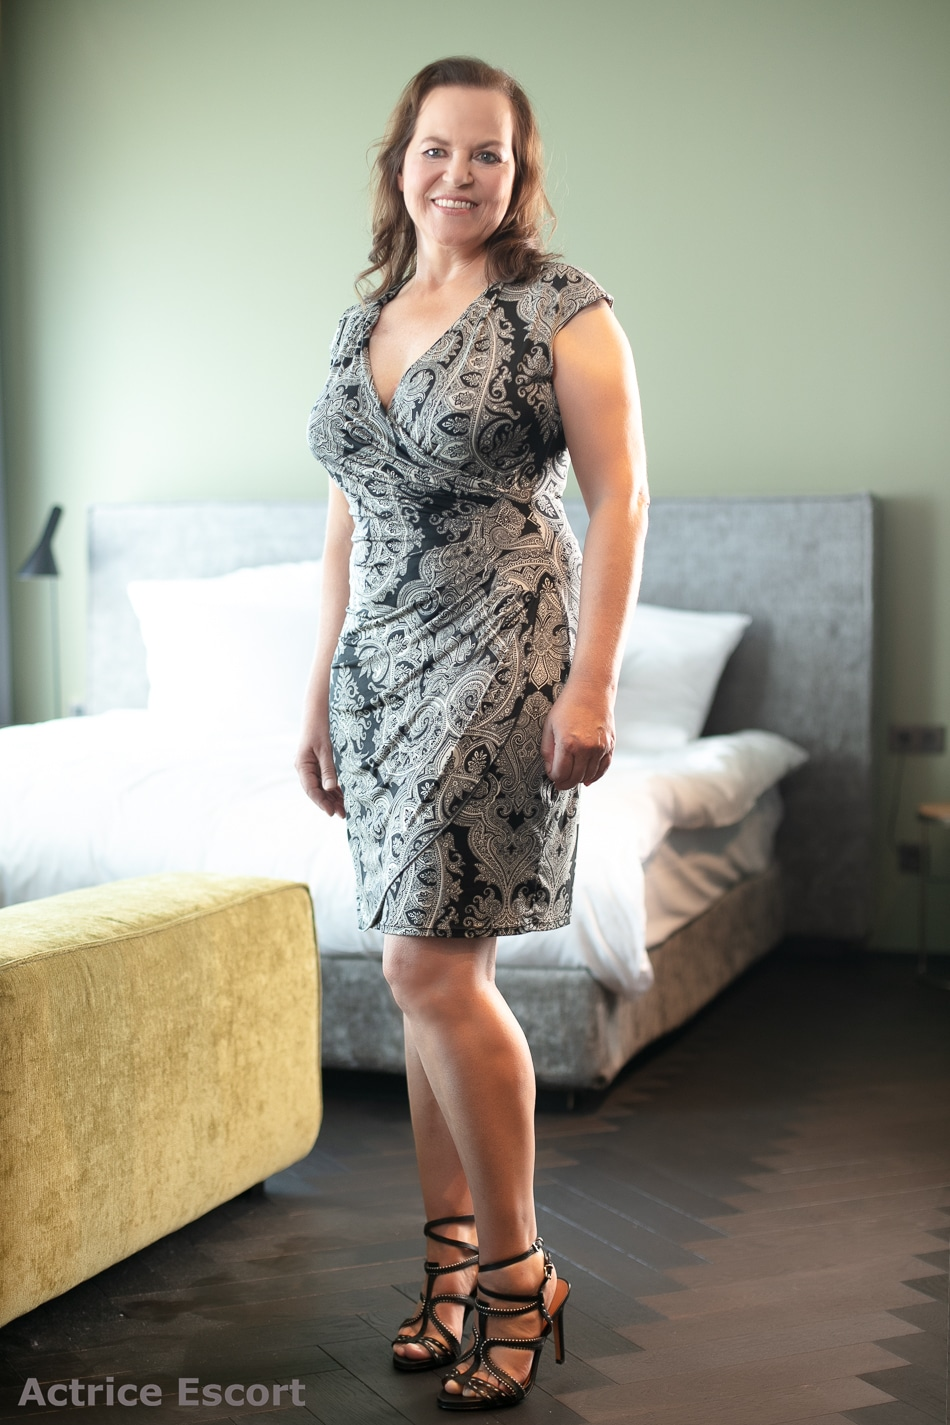 Bettina Escortservice Duesseldorf(4)